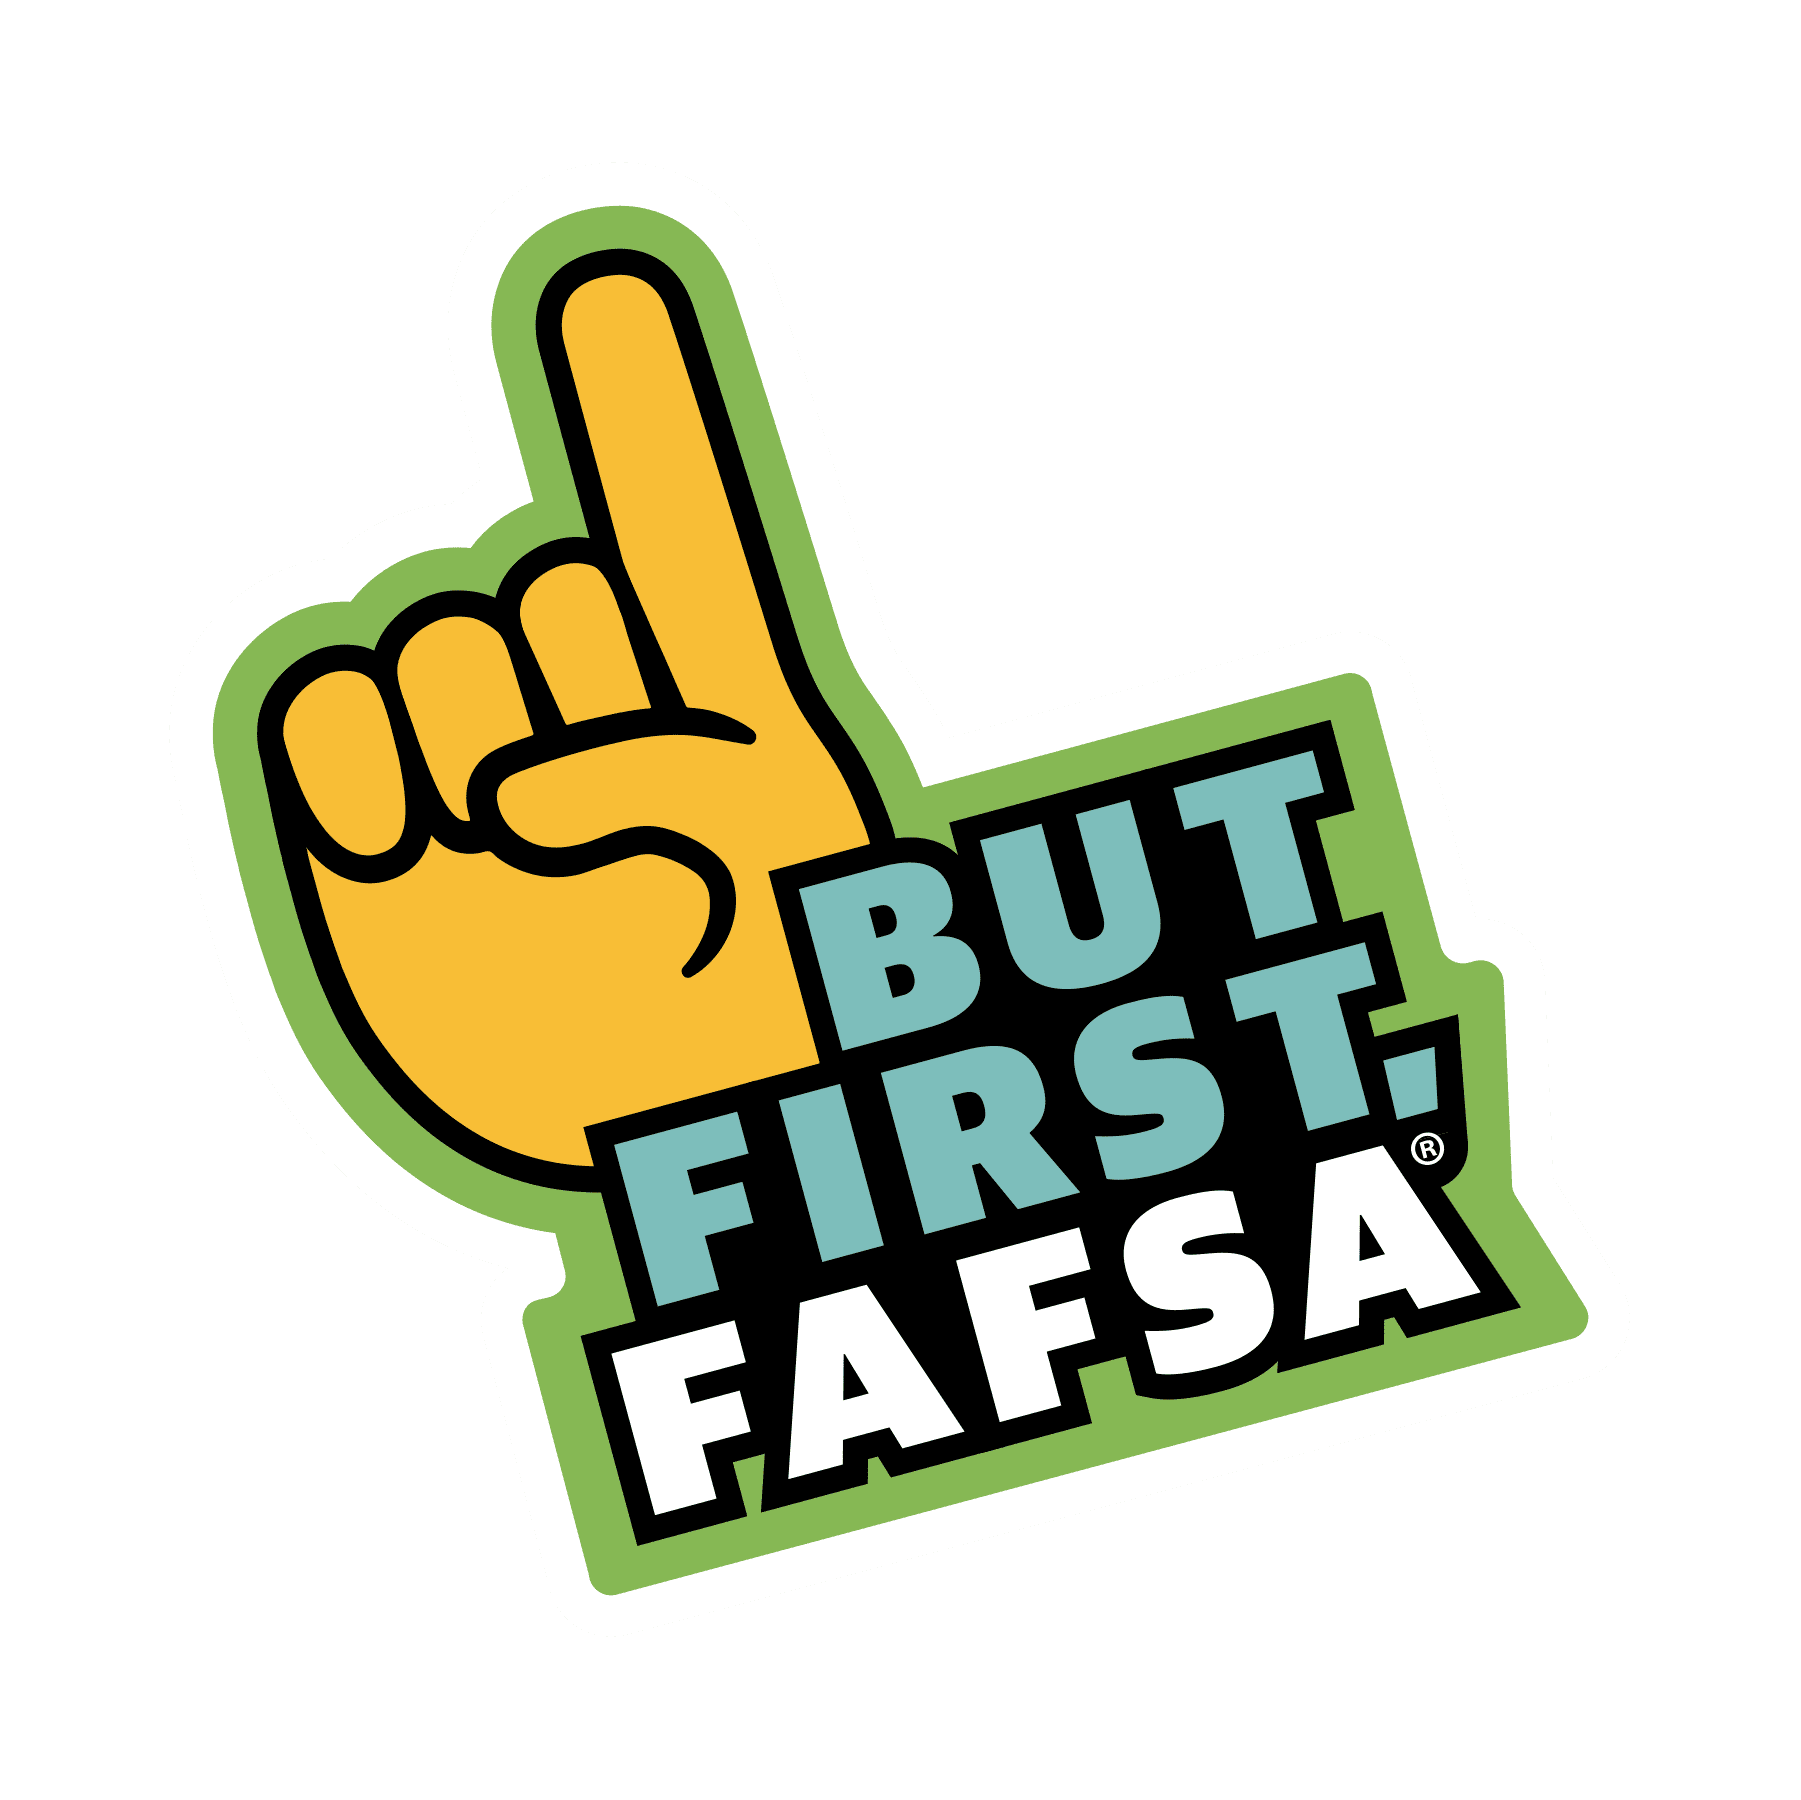 The 20 Fafsa Form Will Be Available Oct 1st